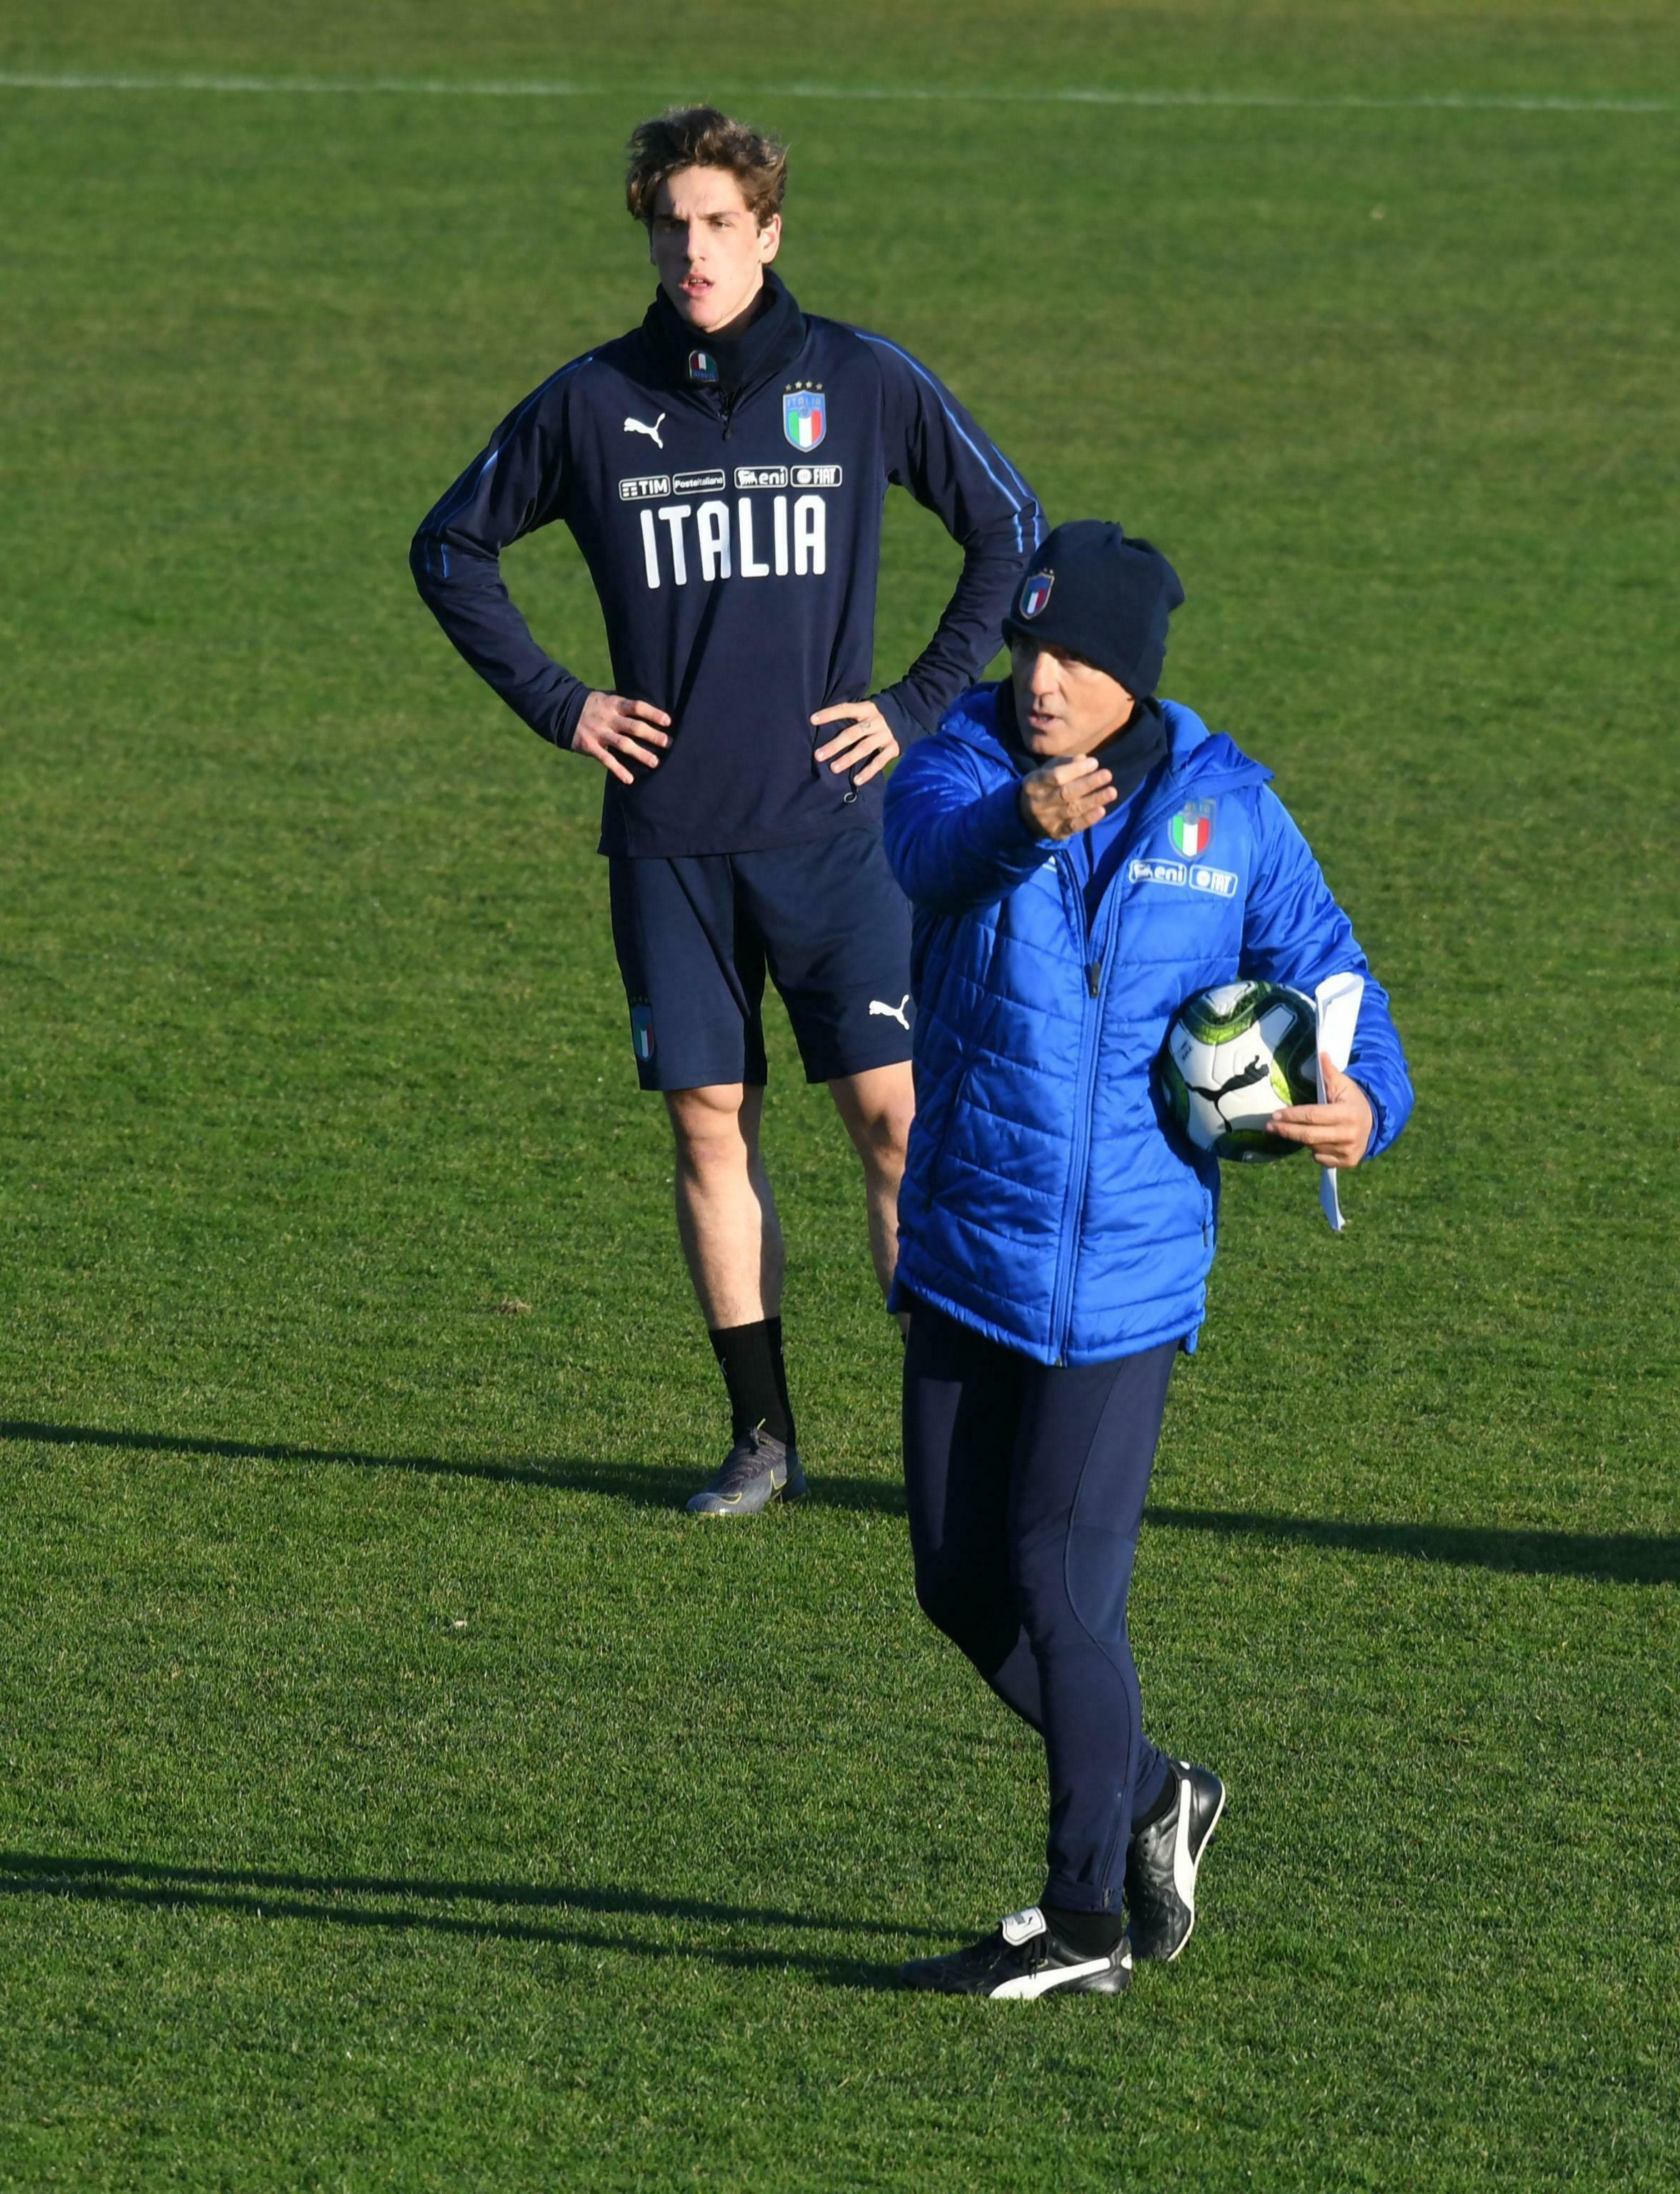 Zaniolo is considered a long-term mainstay for both club and country